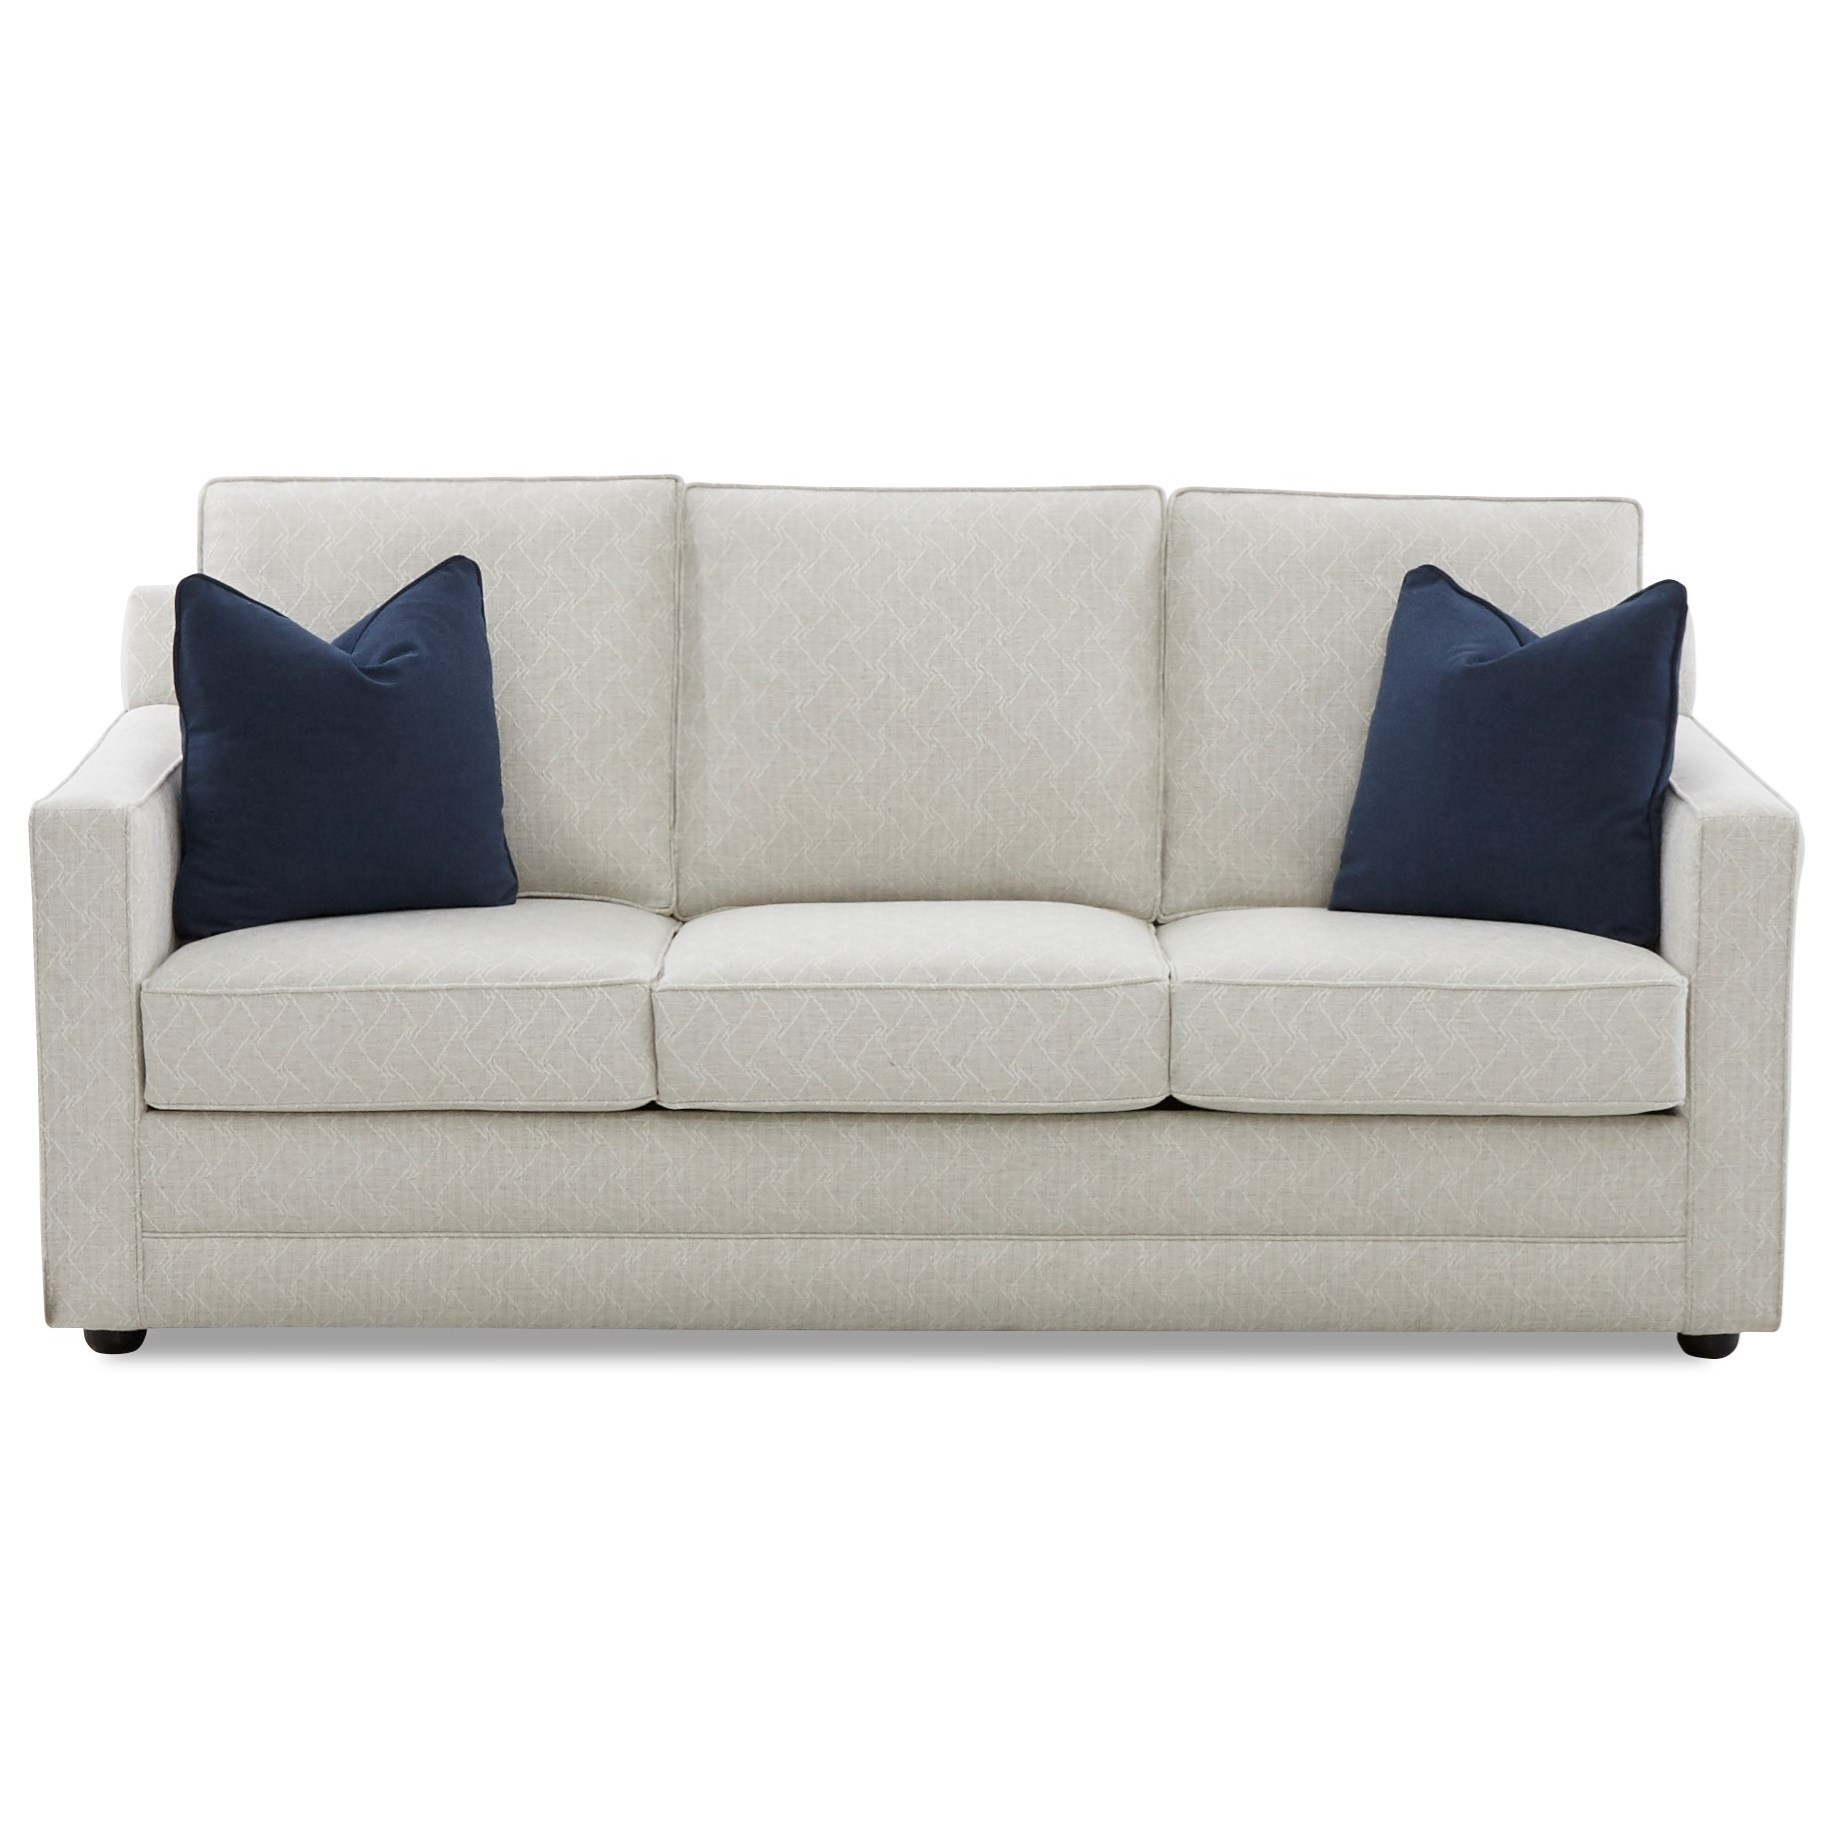 Klaussner Laudholm Contemporary 80 Inch Sleeper Sofa with ...